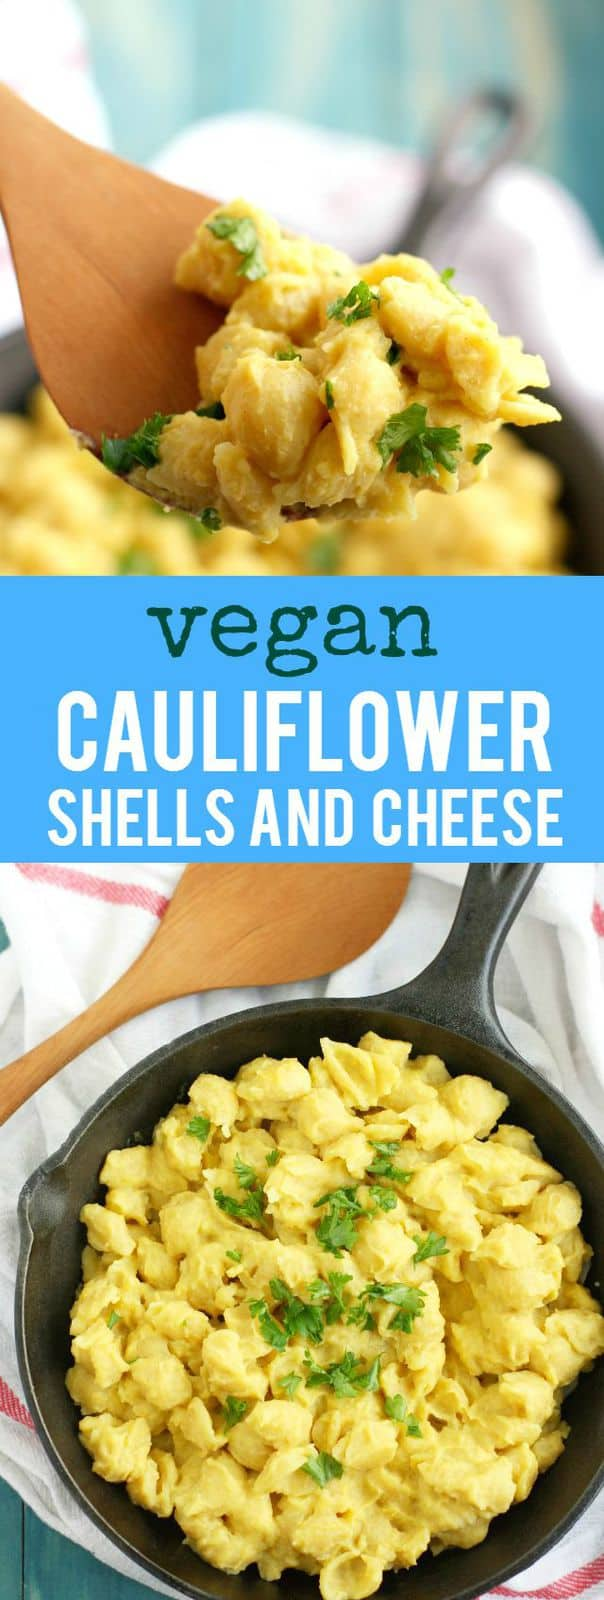 Shells and cheese made with a creamy cauliflower sauce. This is easy to make and full of plant based nutrition!